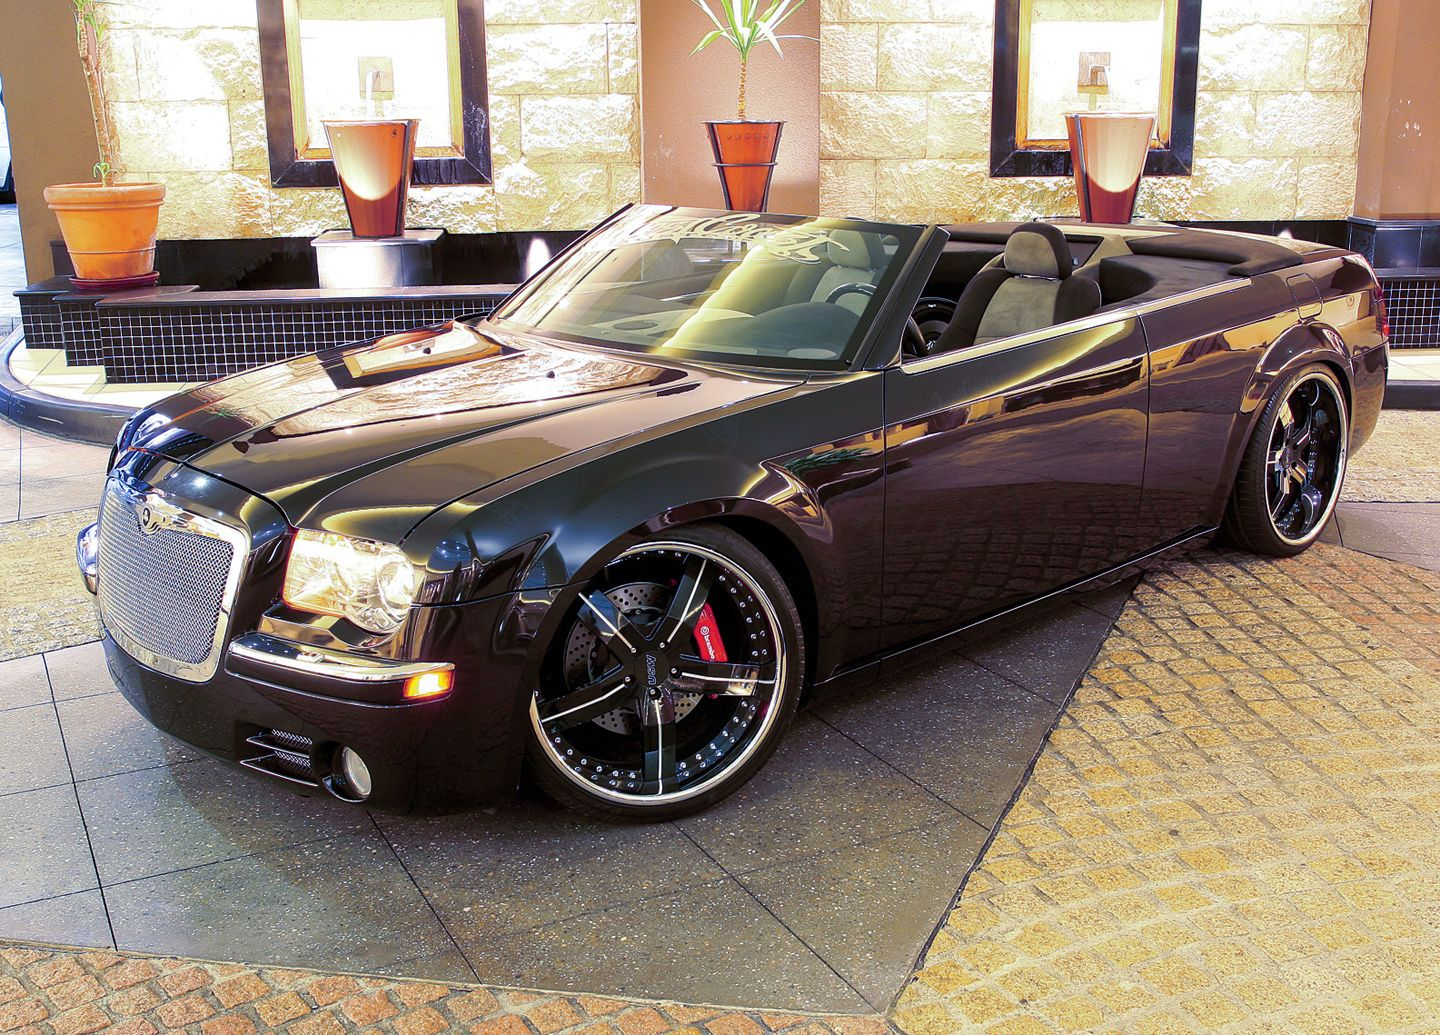 Chrysler 300 With Images Chrysler 300 Convertible Chrysler